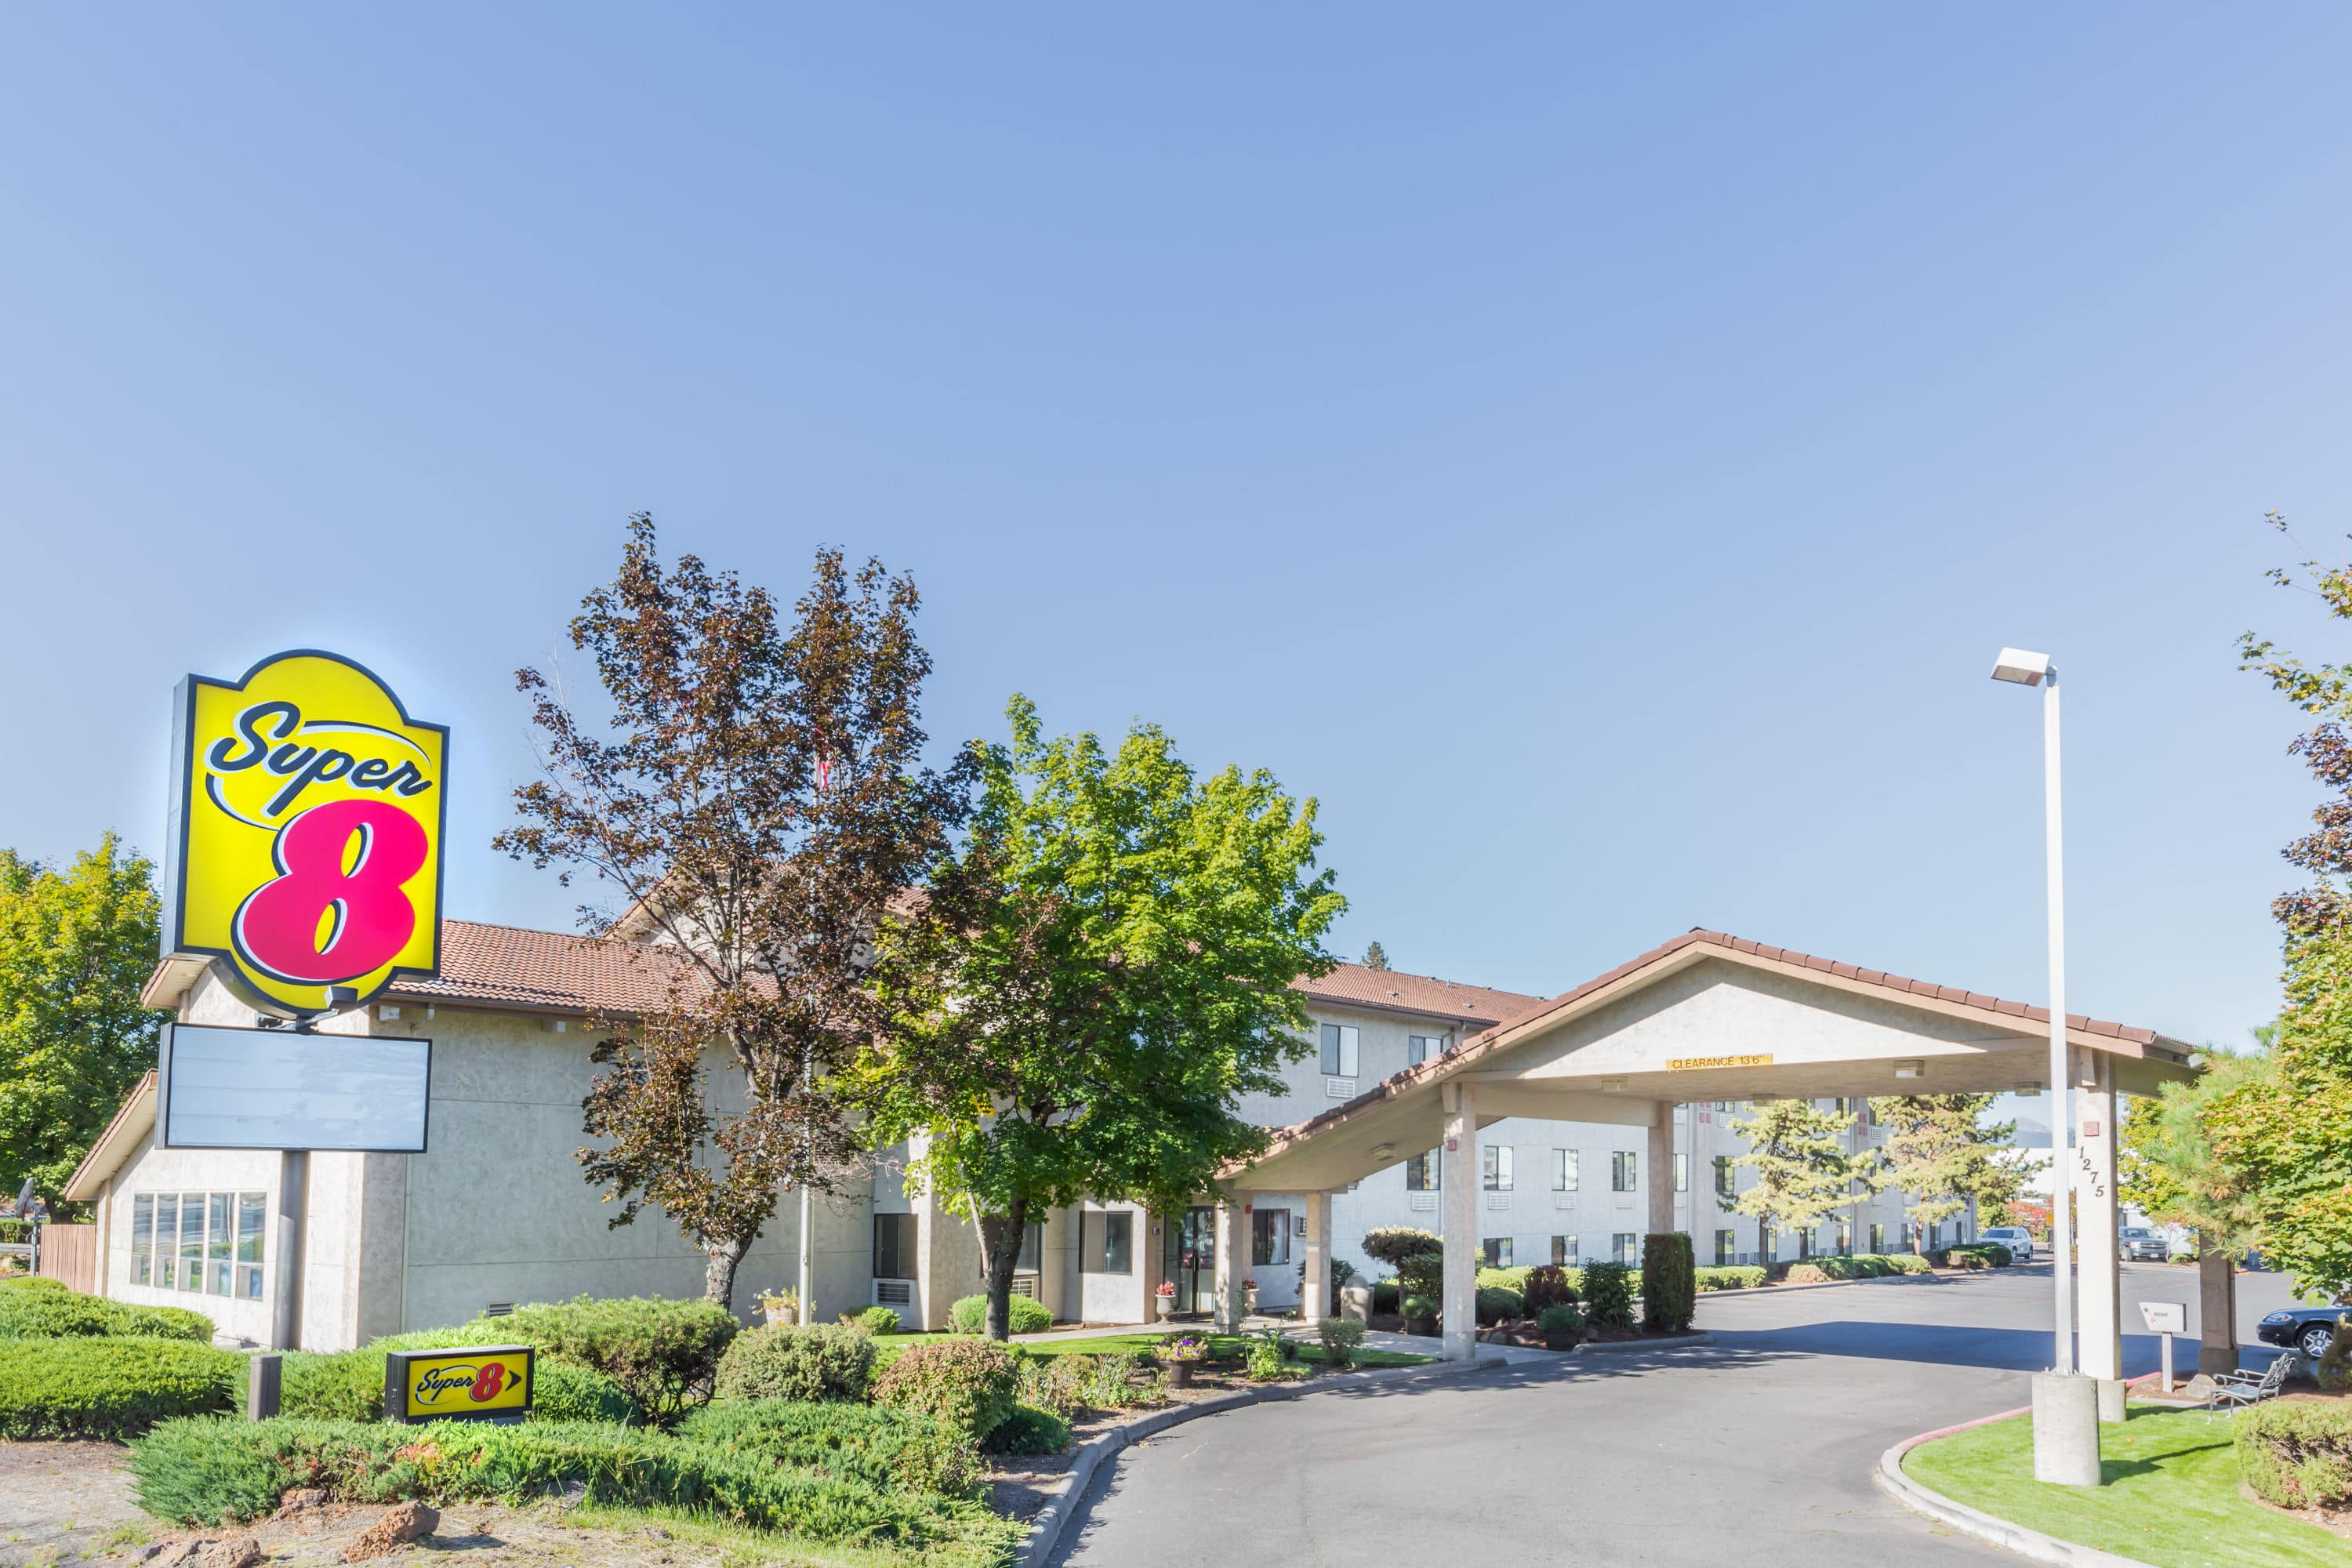 Exterior Of Super 8 By Wyndham Bend Hotel In Bend, Oregon